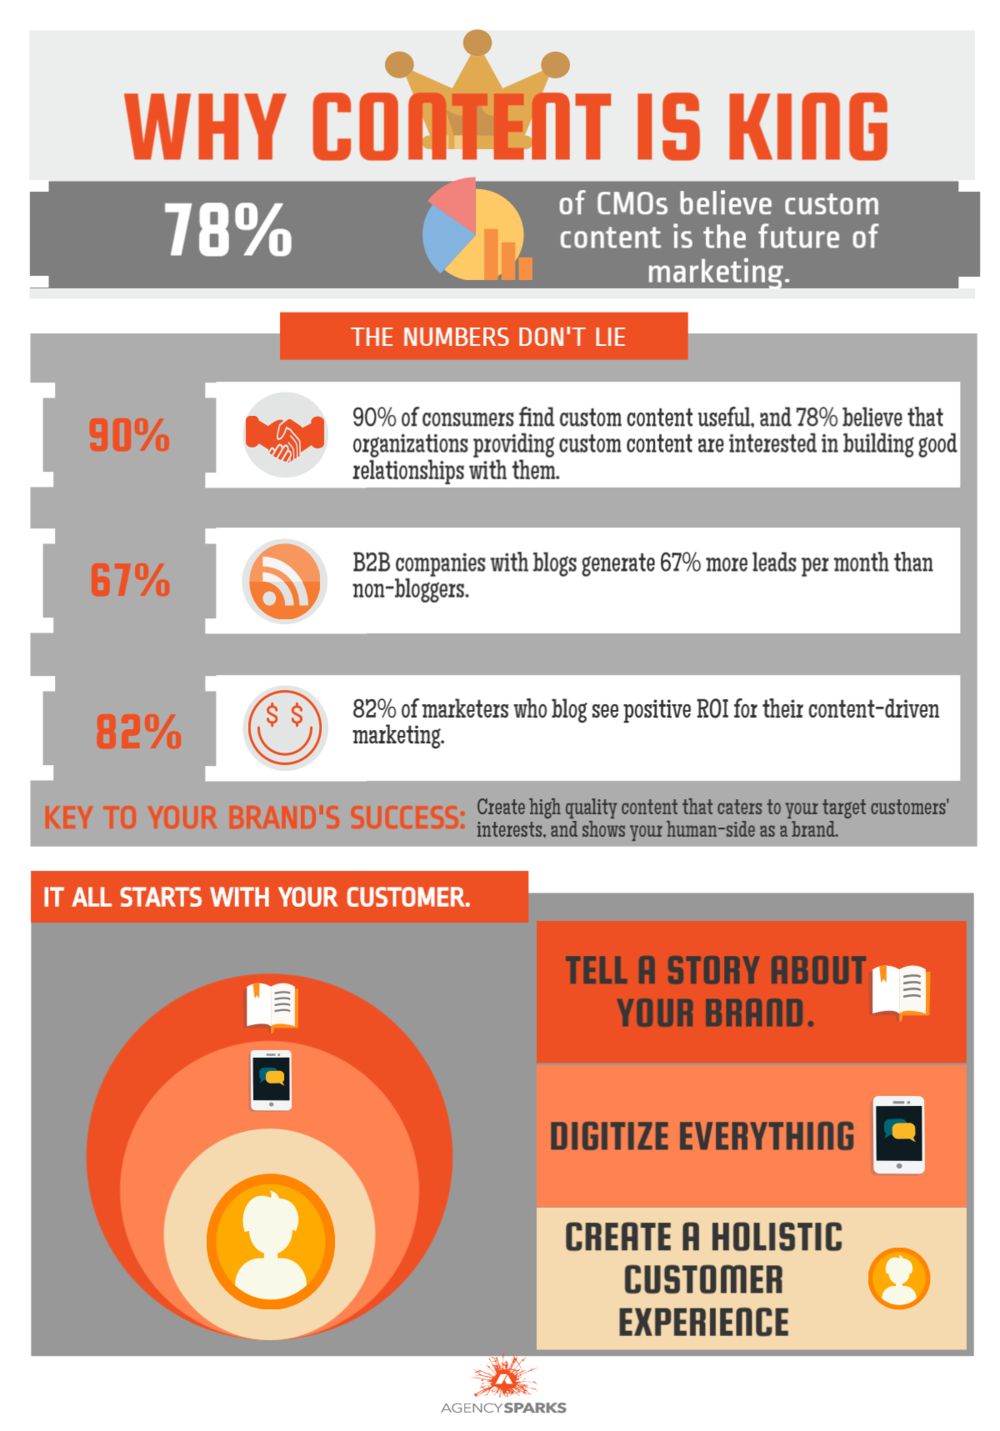 Content is King Infographic - AgencySparks    Content is crucial and should be at the forefront of your business strategy. 78% of CMOs believe custom content is the future of marketing. Custom content is useful, generates more leads, and produces positive ROI. By catering to your consumer's interests,this will show you want to build good relationships with them. Your customers are at the heart of your business; create a holistic experience for them, digitalize everything, and tell a story about your brand.